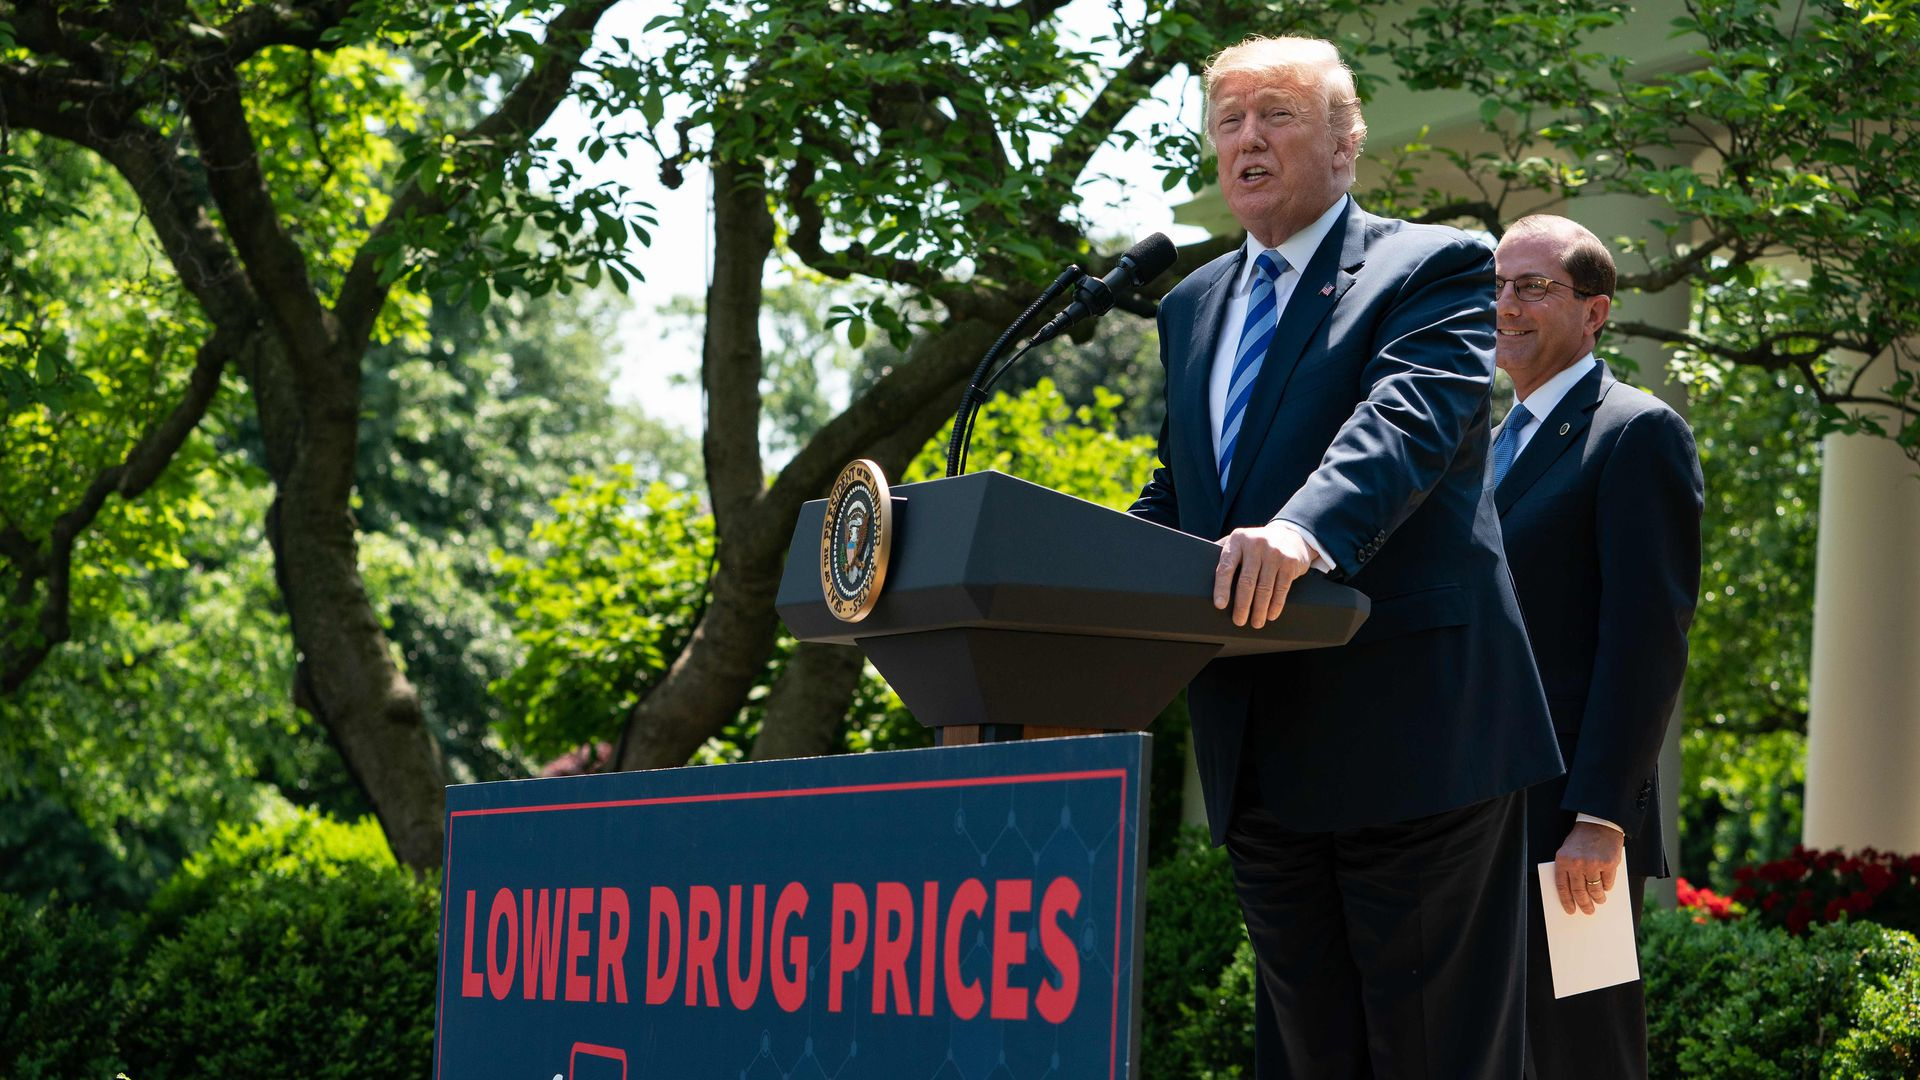 President Trump and Alex Azar discuss a drug price plan in the Rose Garden.